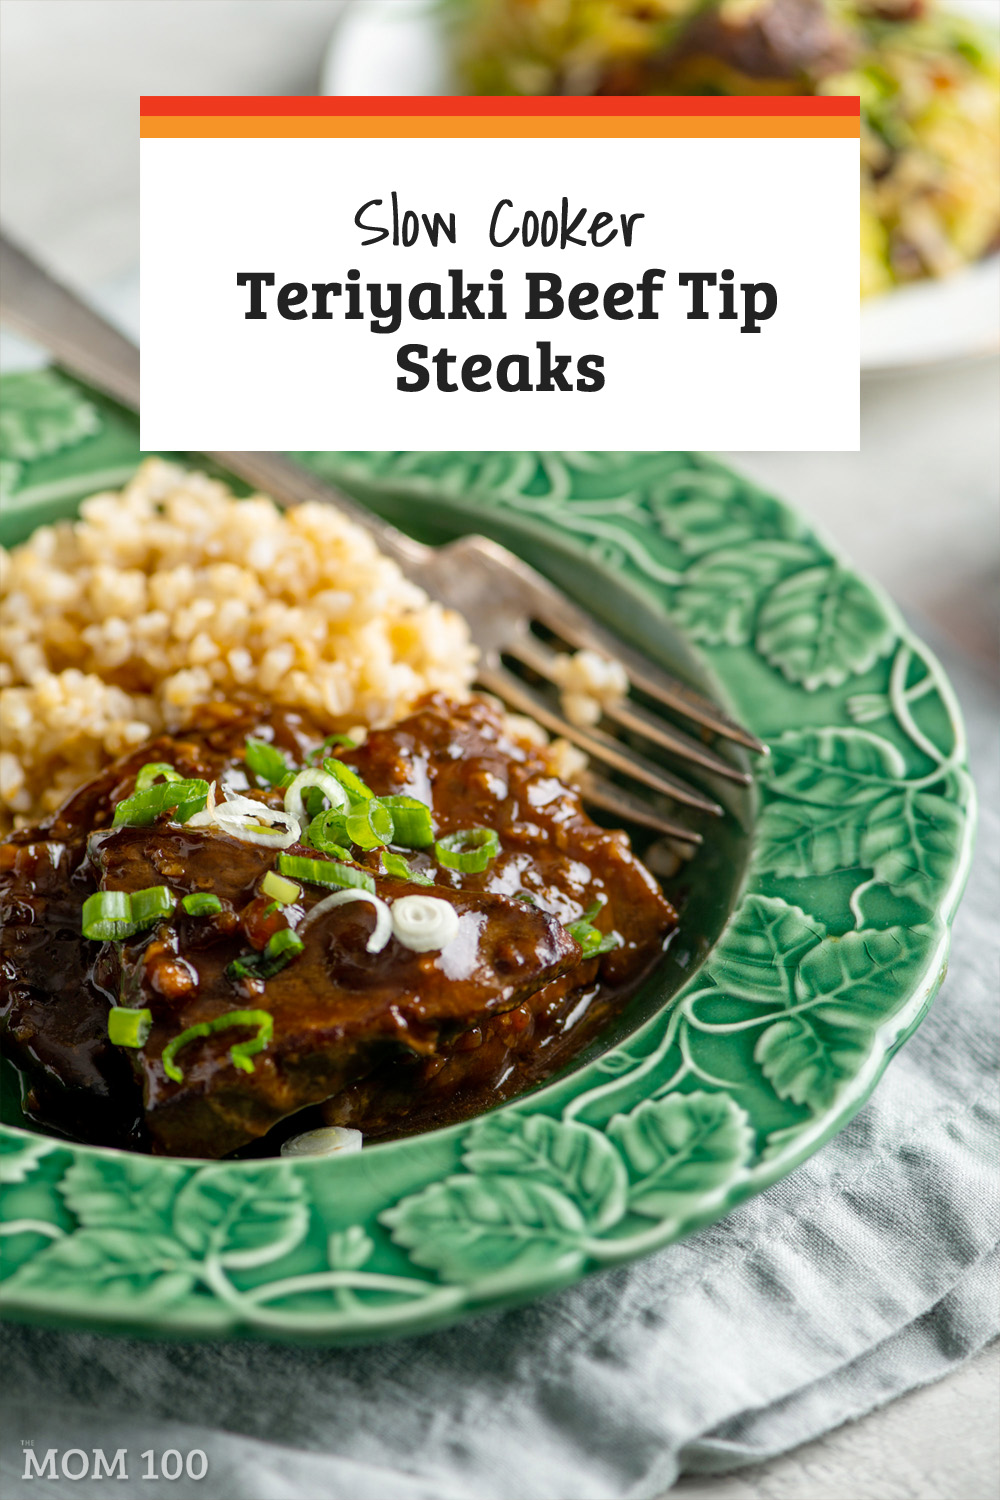 Slow Cooker Teriyaki Beef Tip Steaks: This Asian Crock Pot dinner with a gorgeous glaze smells amazing, and tastes even better.